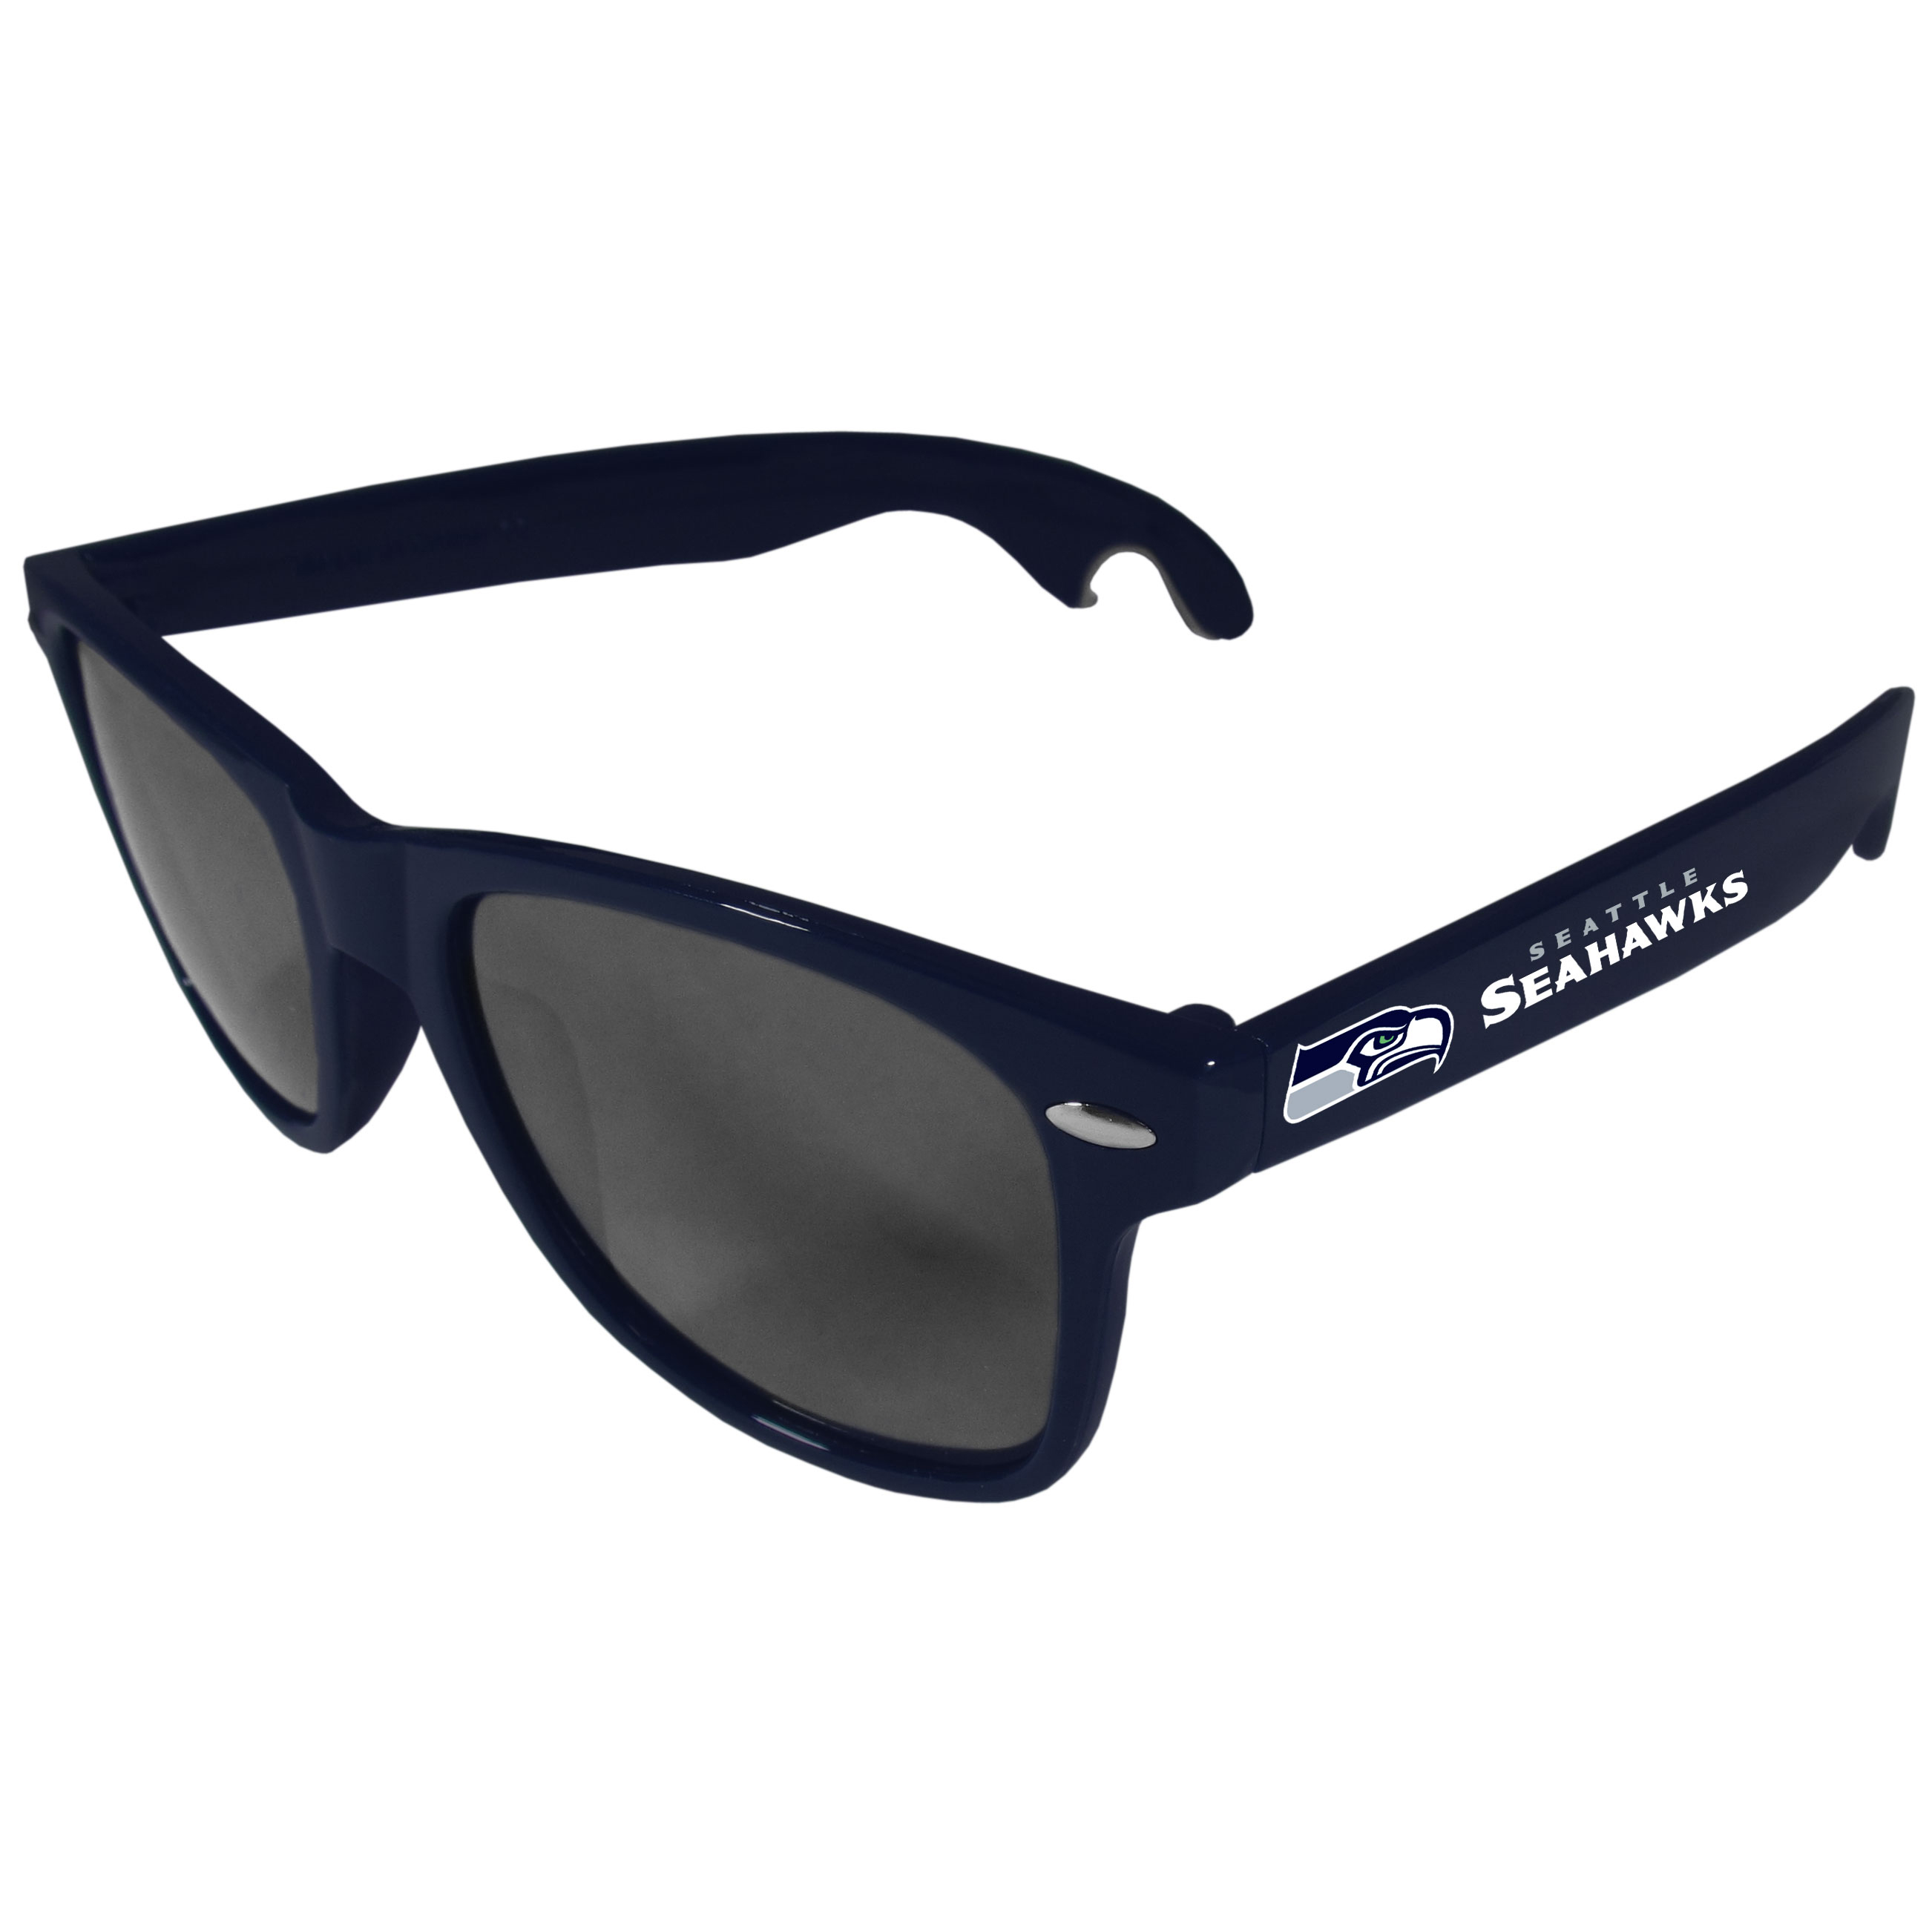 Seattle Seahawks Beachfarer Bottle Opener Sunglasses, Dark Blue - Seriously, these sunglasses open bottles! Keep the party going with these amazing Seattle Seahawks bottle opener sunglasses. The stylish retro frames feature team designs on the arms and functional bottle openers on the end of the arms. Whether you are at the beach or having a backyard BBQ on game day, these shades will keep your eyes protected with 100% UVA/UVB protection and keep you hydrated with the handy bottle opener arms.